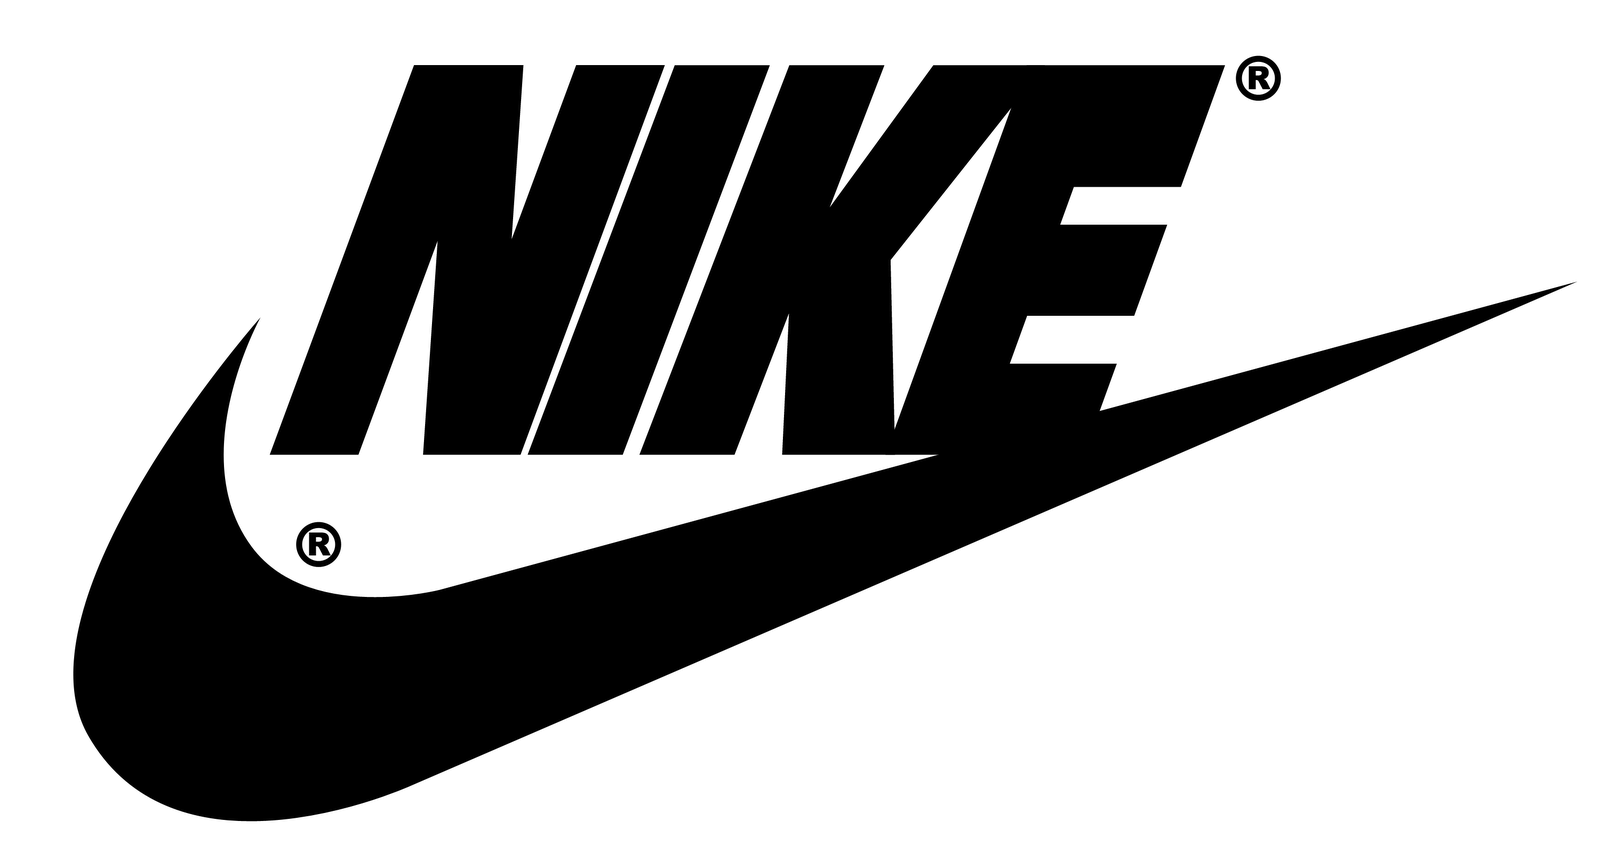 Nike logo full hd pictures